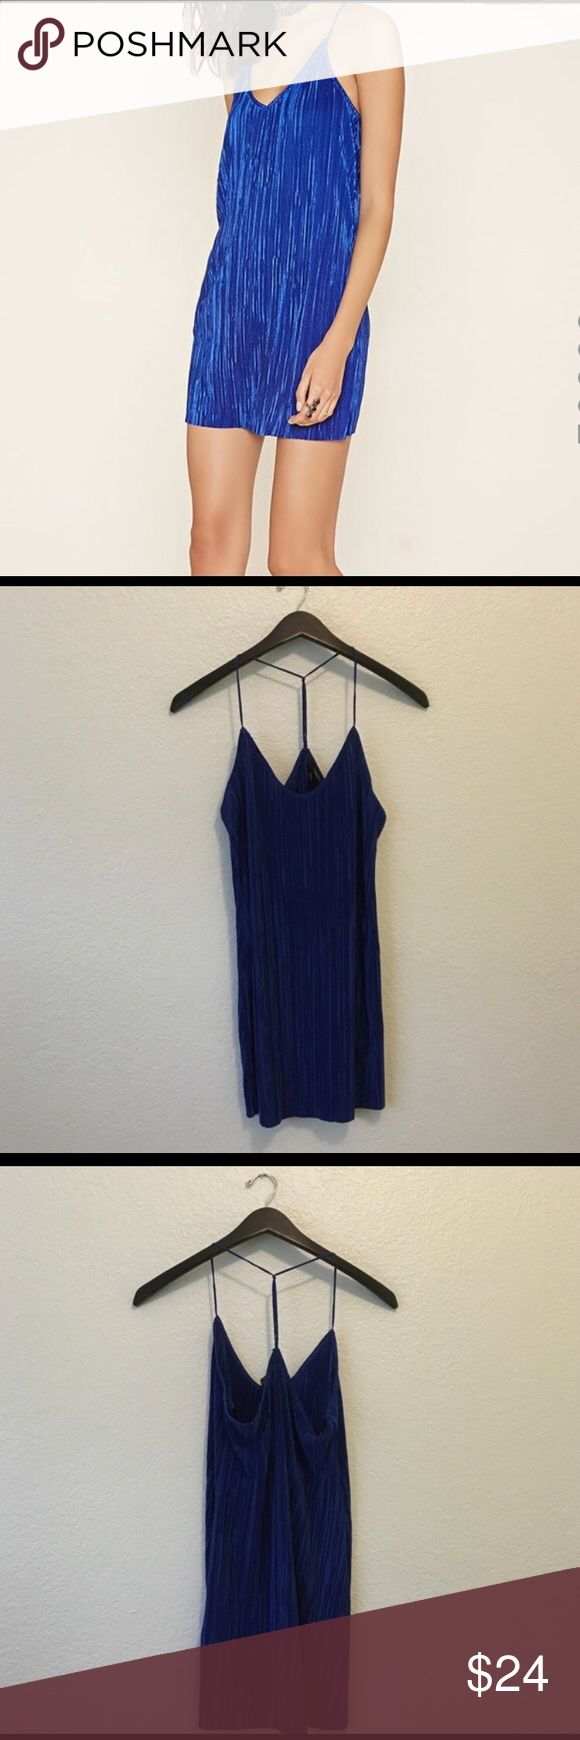 Blue Forever 21 tank dress size small Still brand new and hasn't been worn! I bought it for a La La Land themed dance but ended up wearing a different dress. I bought it for its color - it's a stunning and has beautiful pleats! Forever 21 Dresses